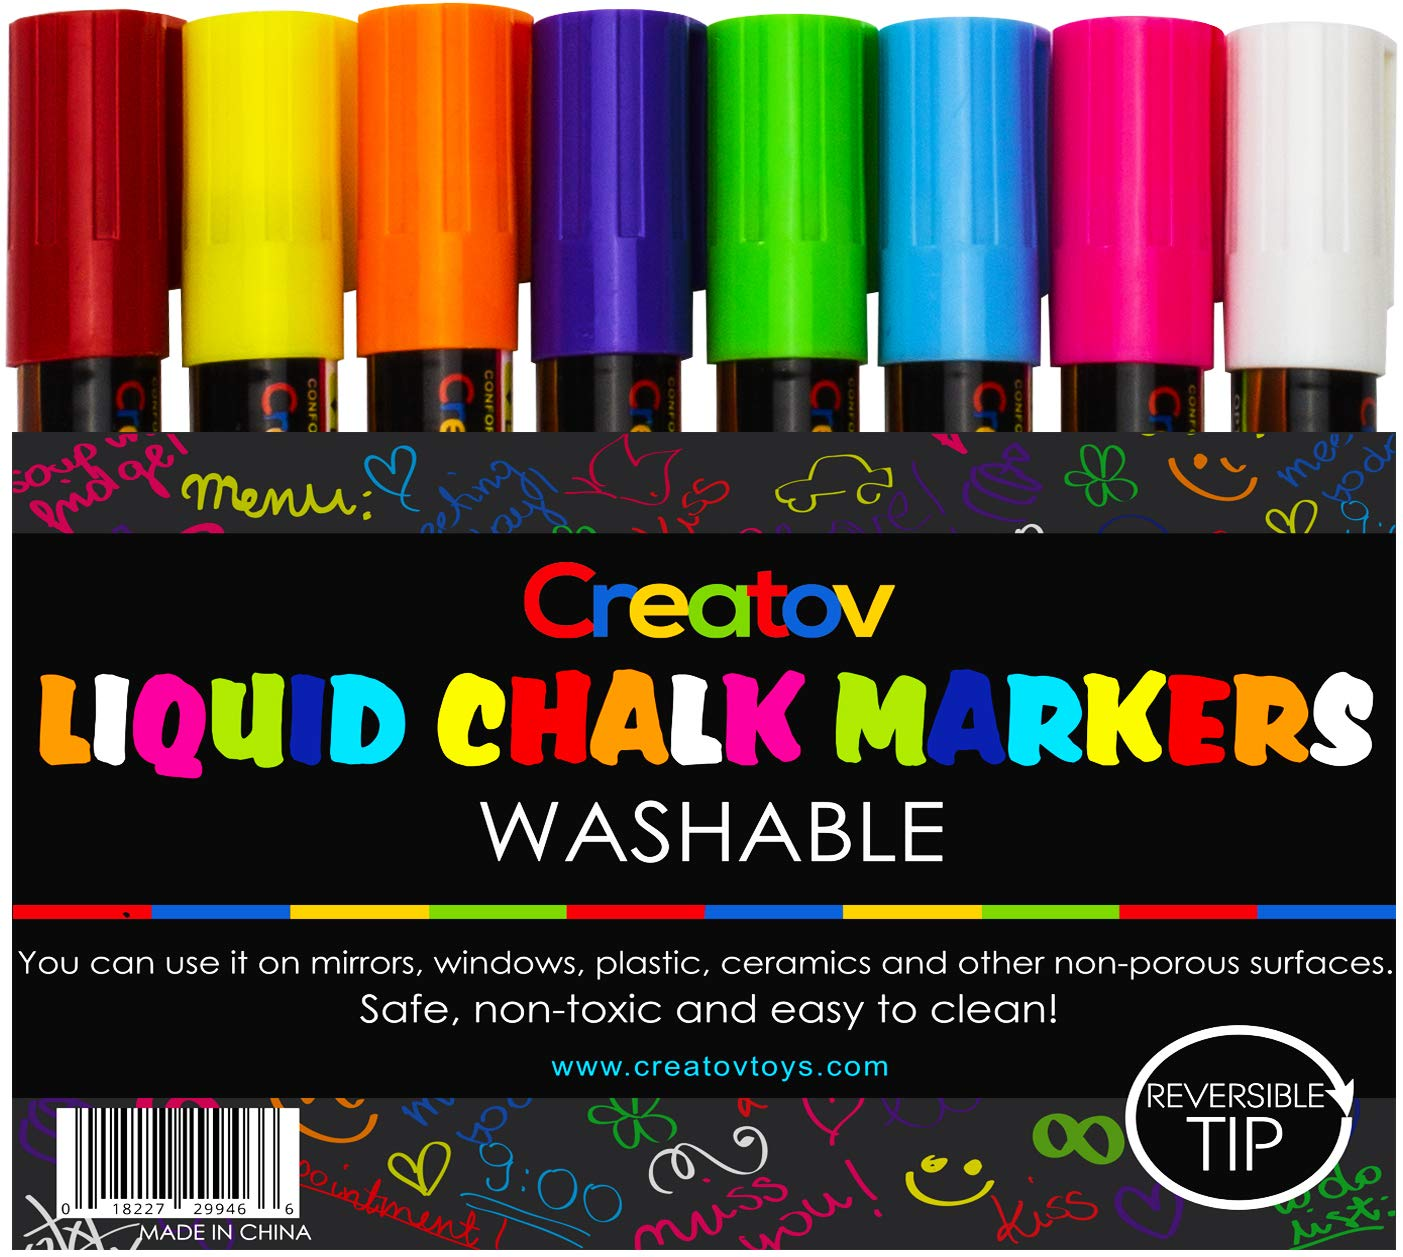 Liquid Chalk Washable Markers 8 Colored Chalk Markers Neon White Safe Easy To Use Non Toxic Great For All Ages By Creatov By Creatova A Amazon Co Uk Kitchen Home